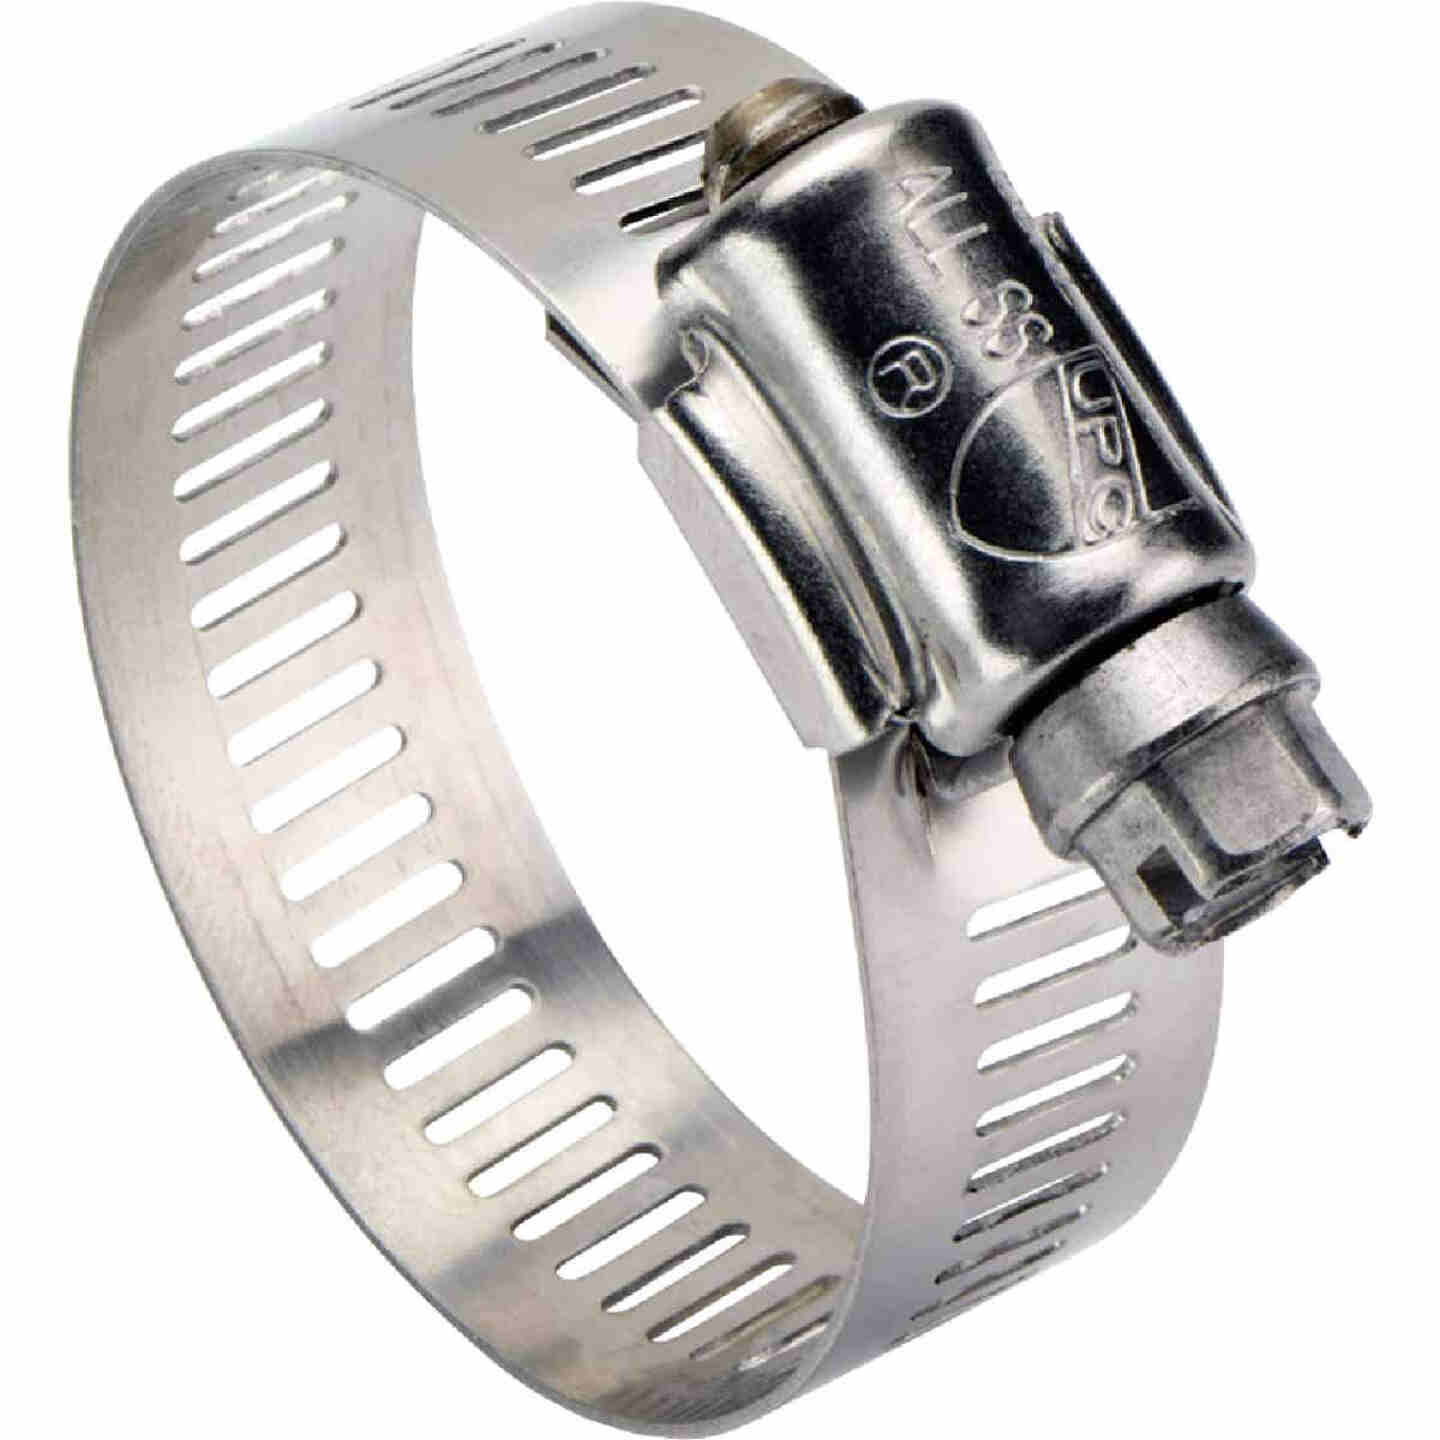 Ideal 5 In. - 7 In. All Stainless Steel Marine-Grade Hose Clamp Image 1